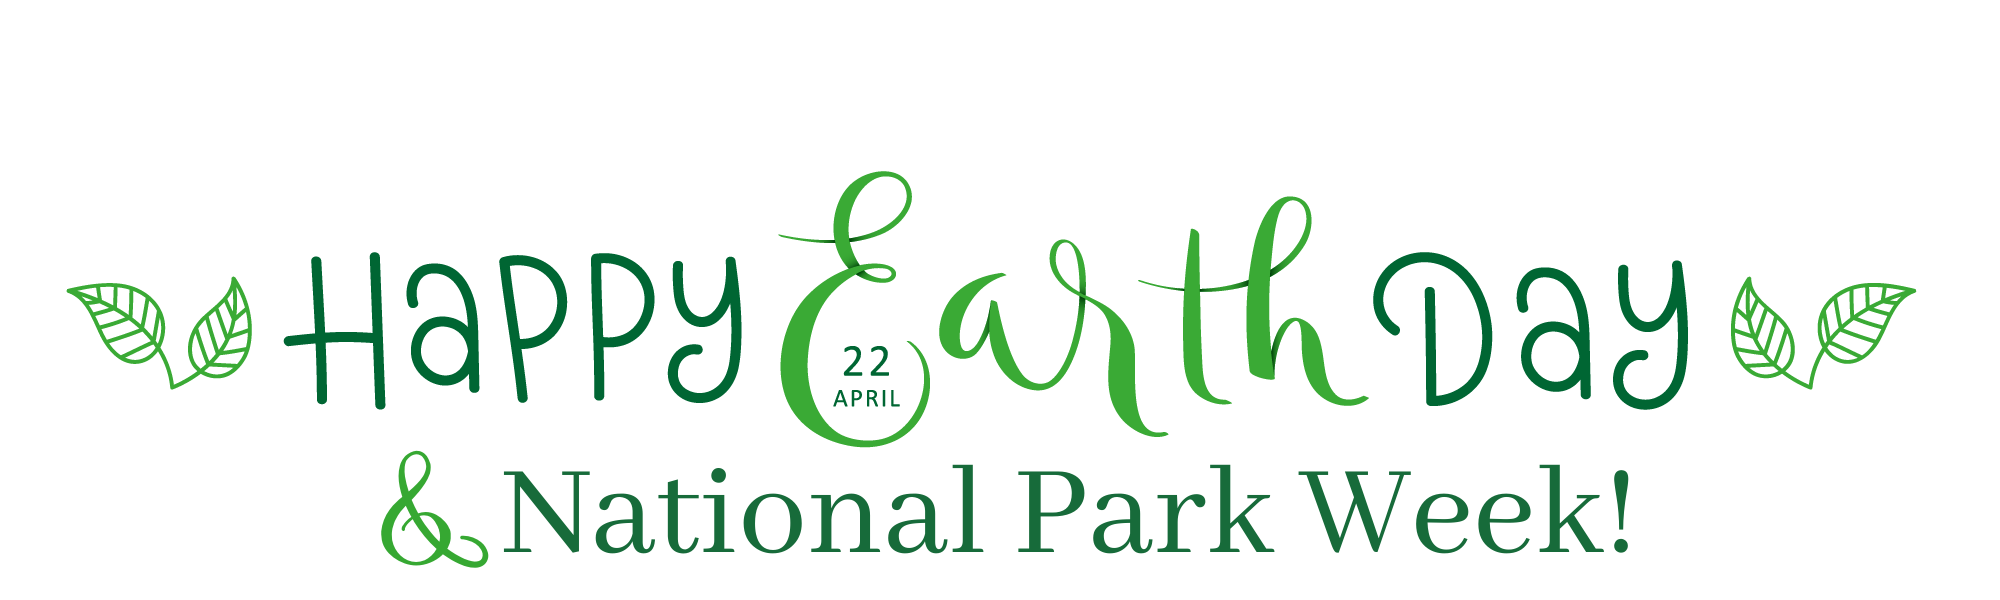 Happy Earth Day and National Park Week!